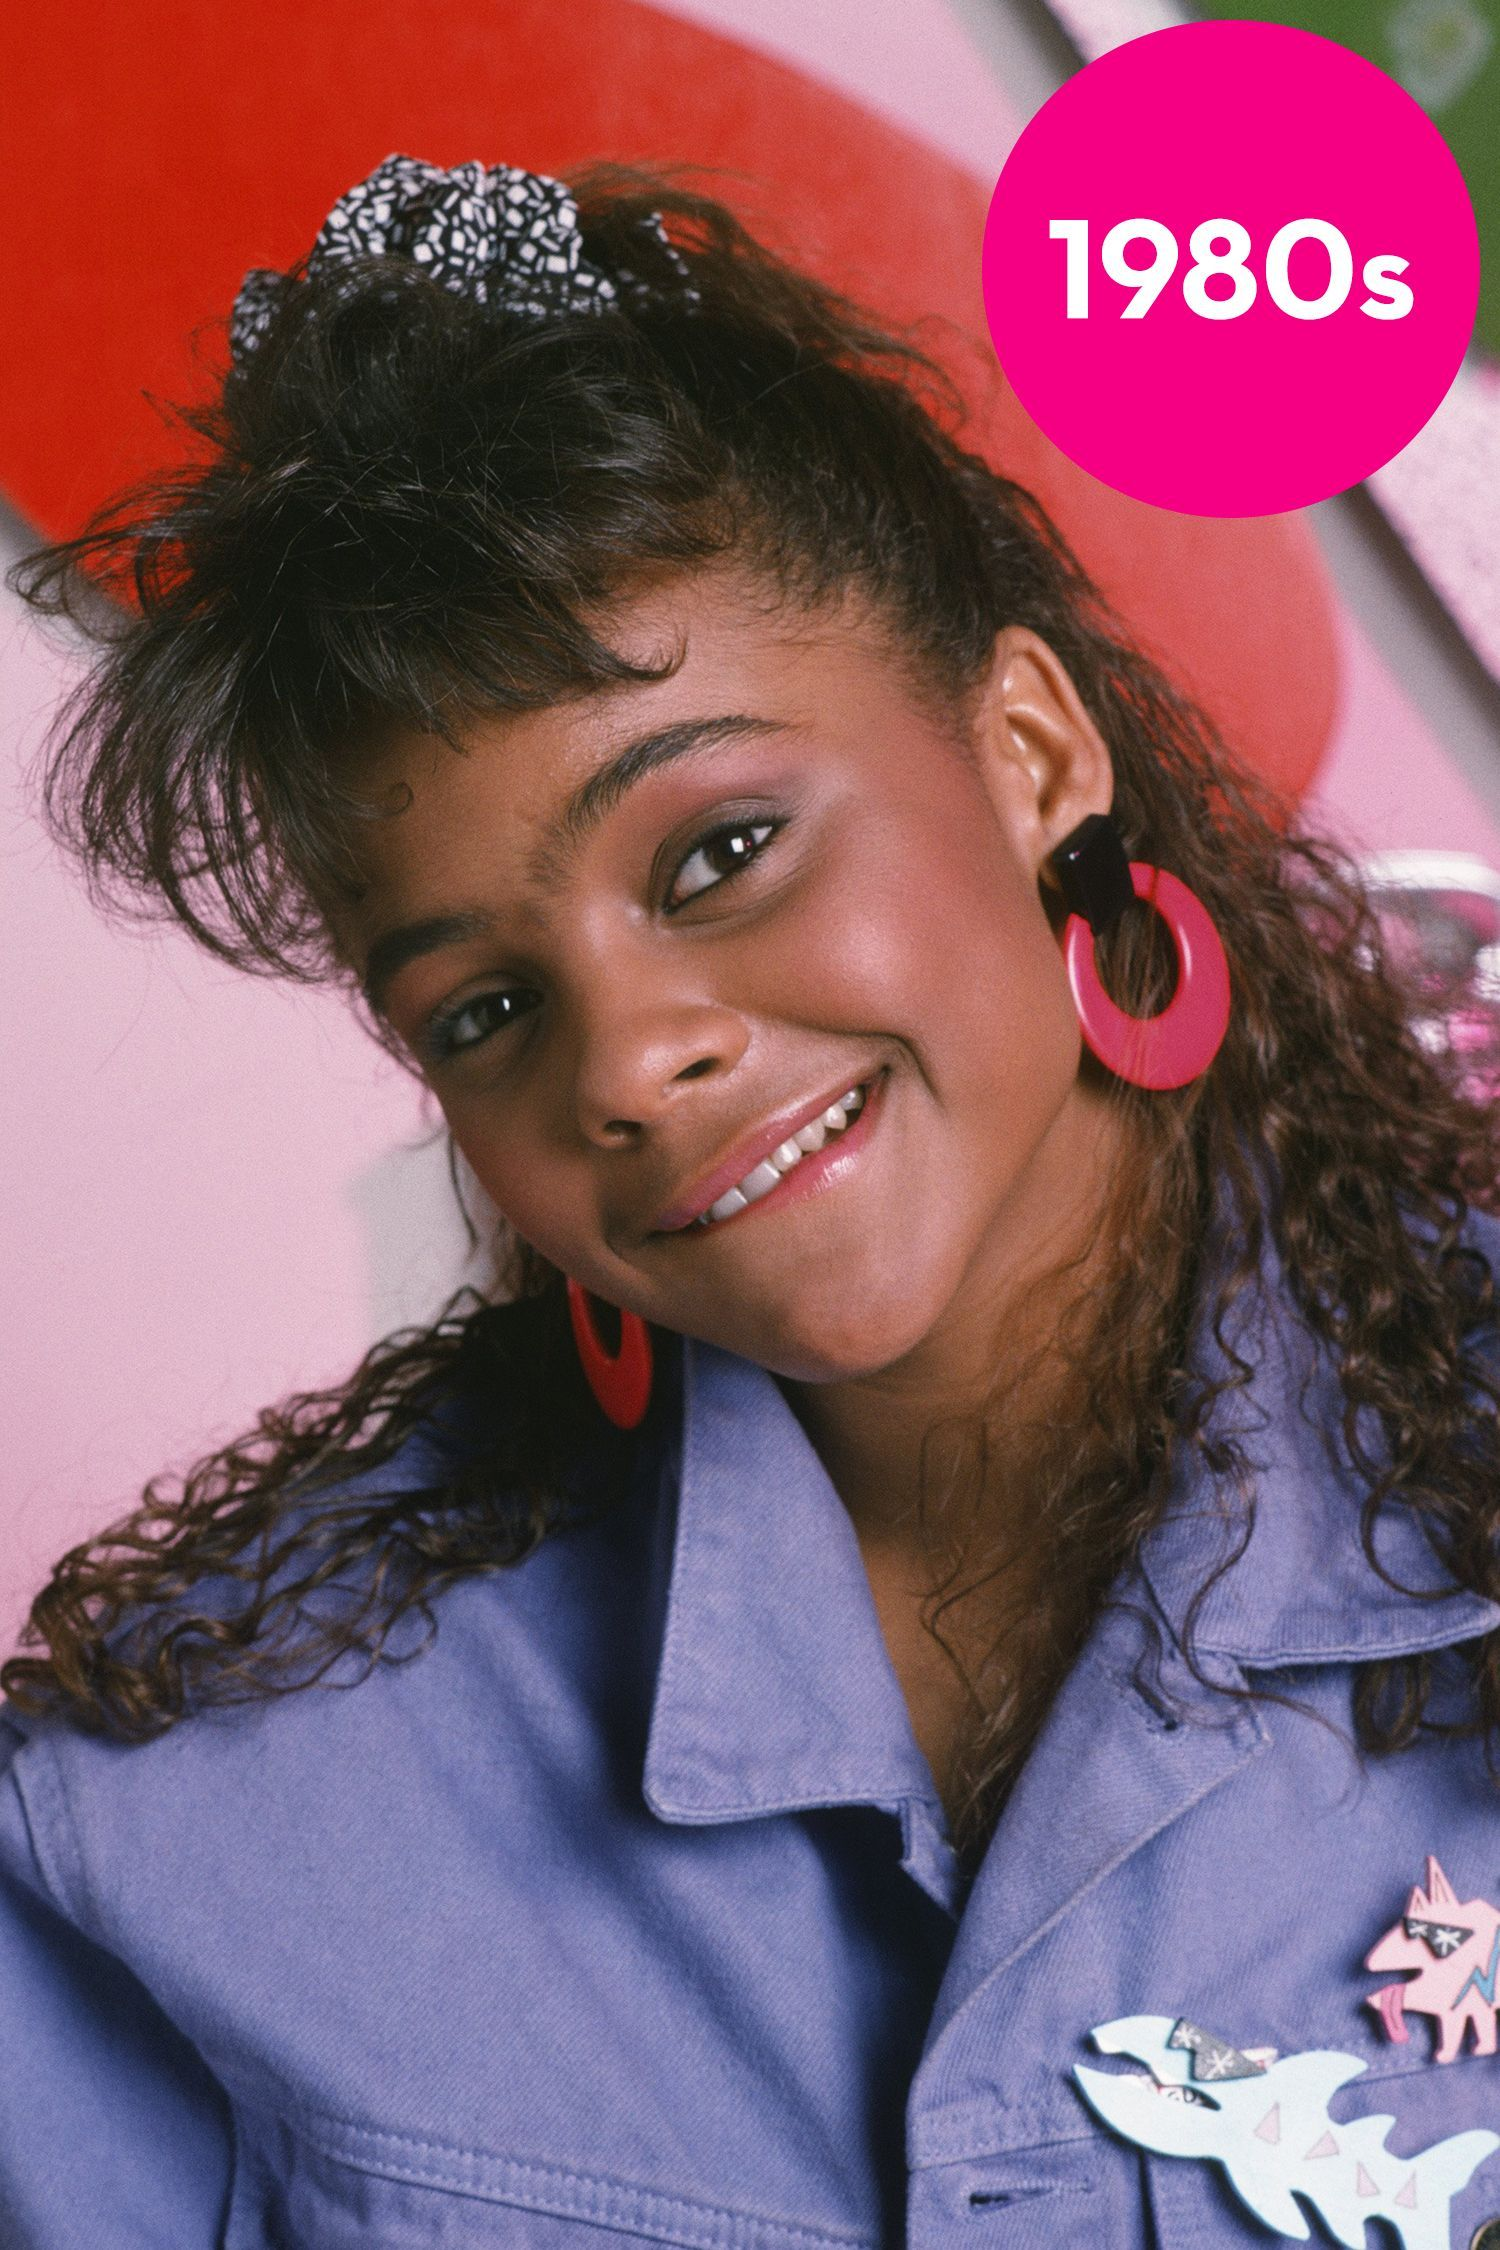 80s Hairstyles Black Videos 60 Embarrassing Beauty Trends Of The 039 70s 039 80s 03 Hair Styles 80s Hair Beauty Trends